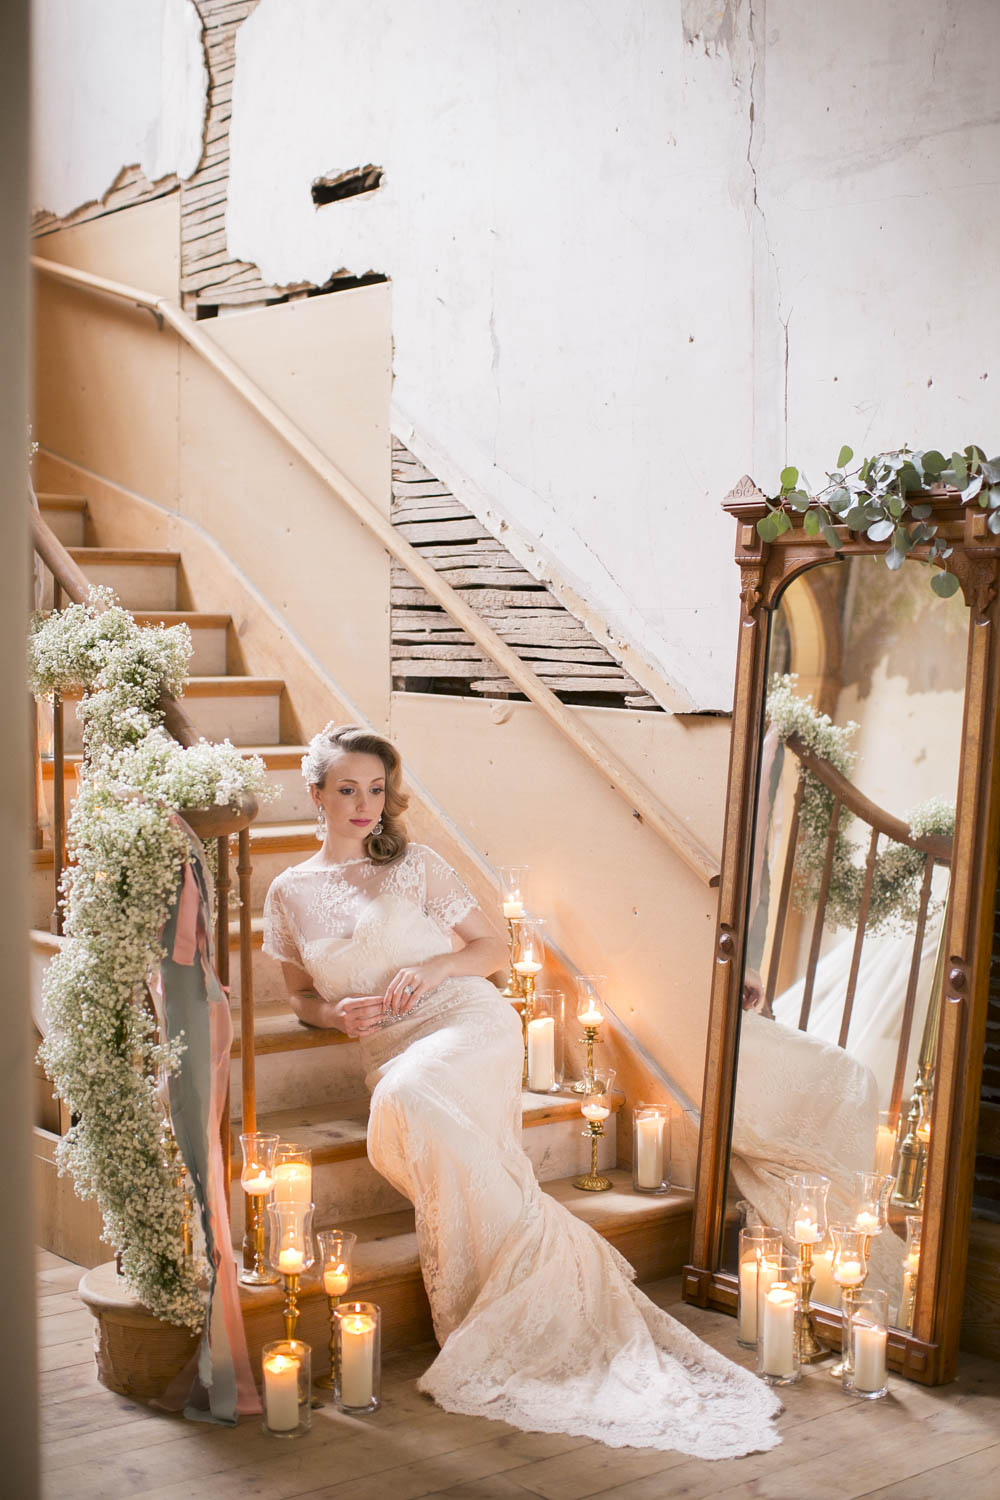 Elegant-Wedding-Magazine-Wedding-Feature-Vintage-Reflections-Editorial-photographers-Willowbank-Estate-photo-by-eva-derrick-photography-philosophy-studios-008.JPG